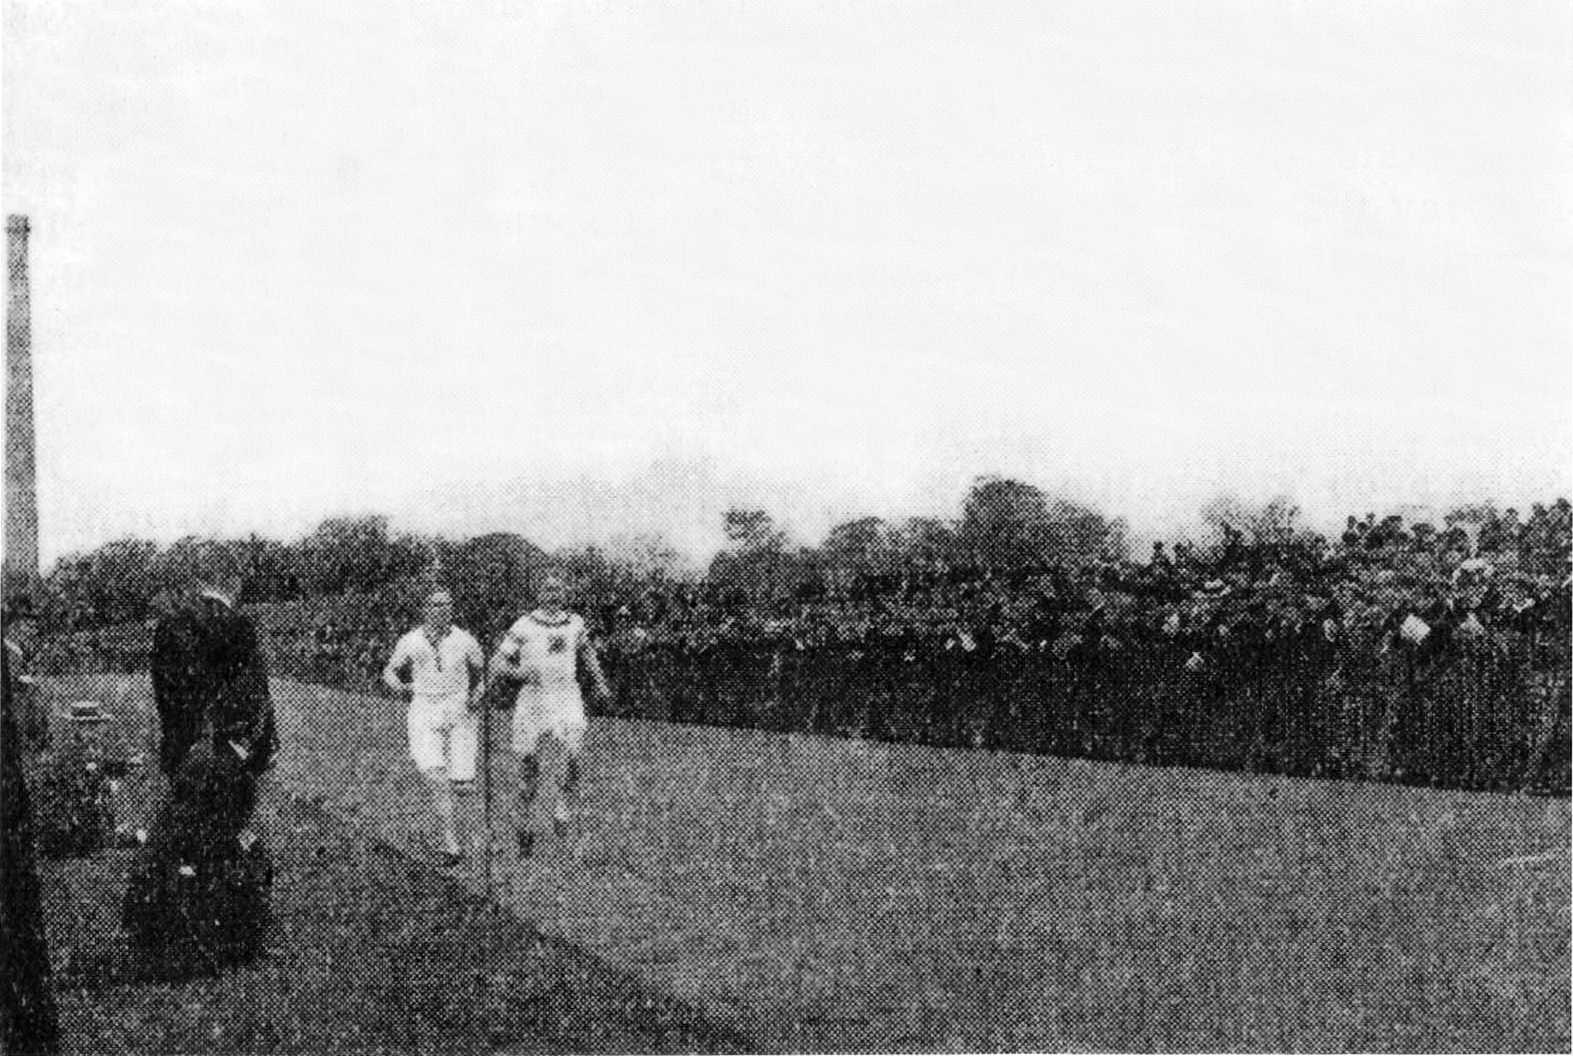 Hugh Welsh v Alfred Tysoe mile Powderhall 28.5.1898 b w